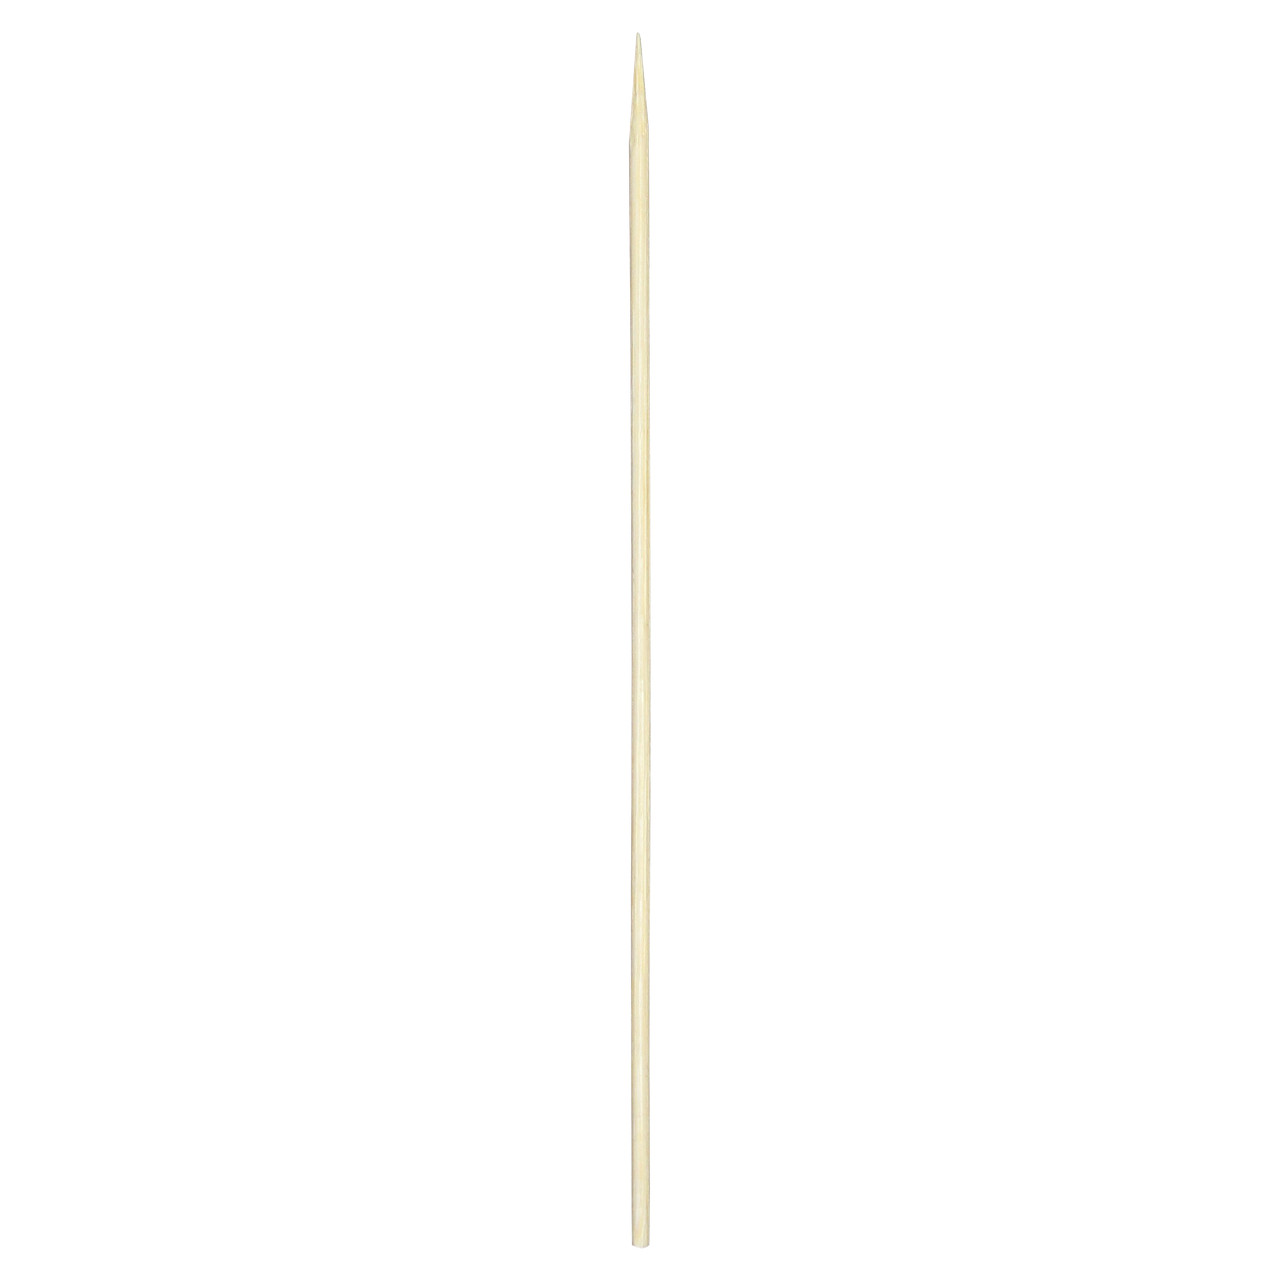 Bamboo Bbq Skewers - Dia:.1in L:7.8in